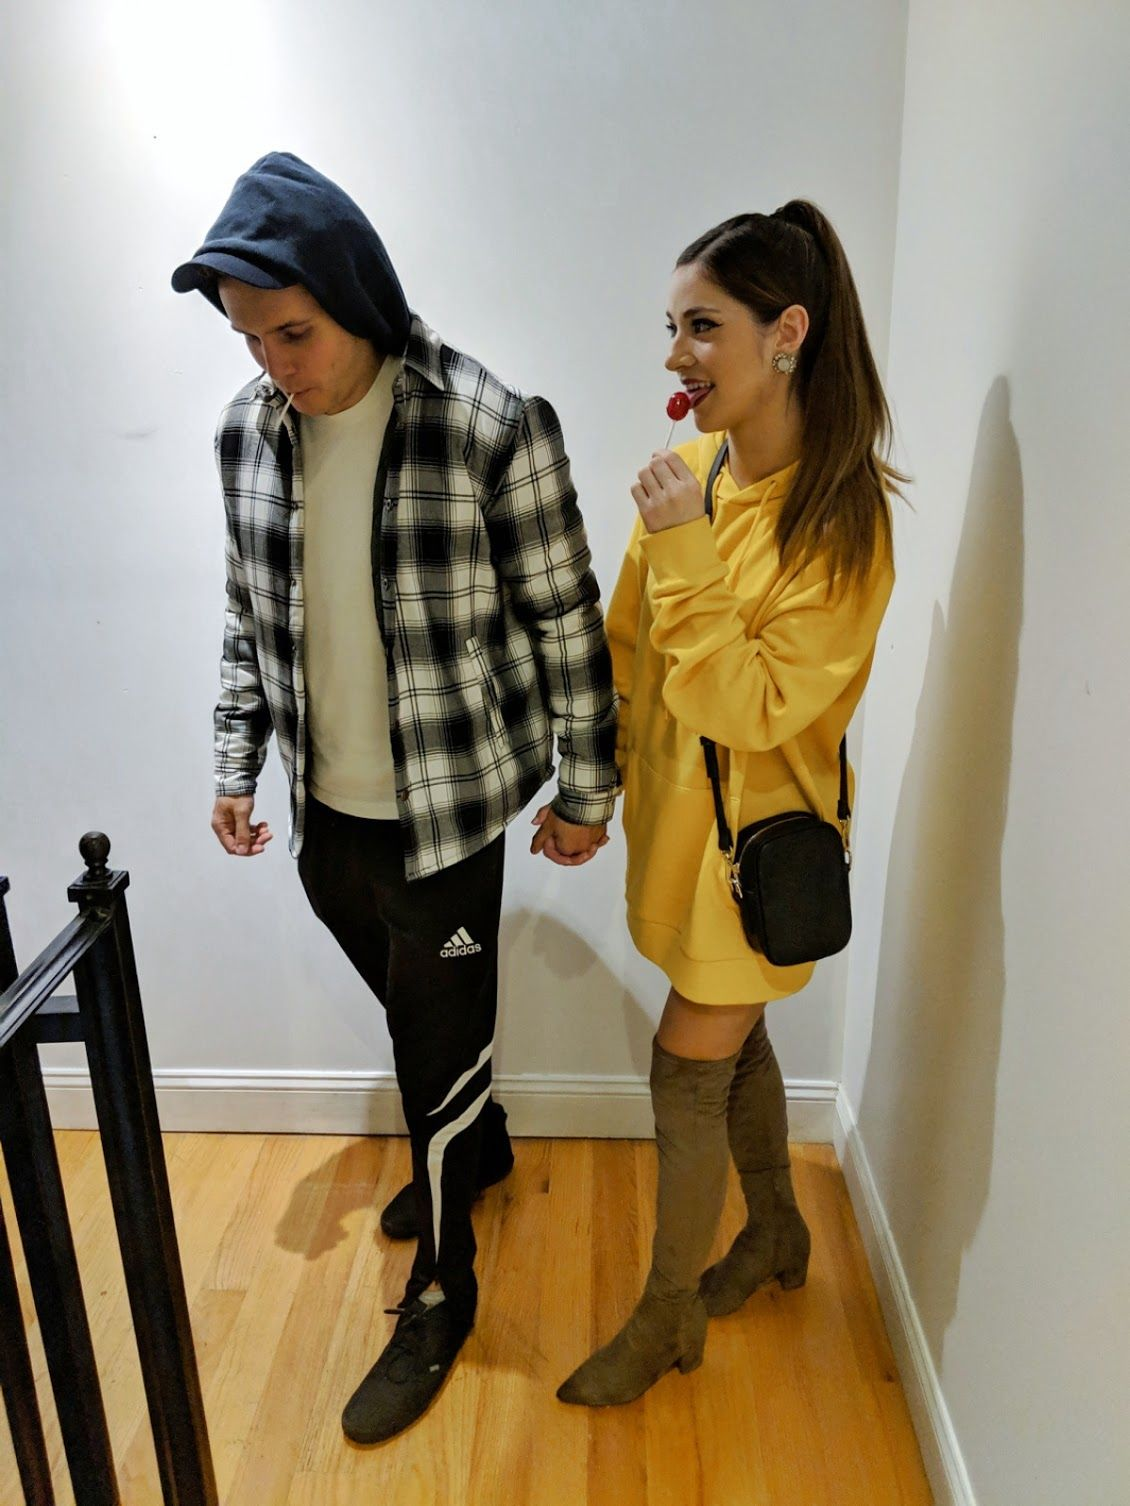 Ariana Grande Halloween Costume 2019.Ariana Grande And Pete Davidson Halloween Costume Halloween In